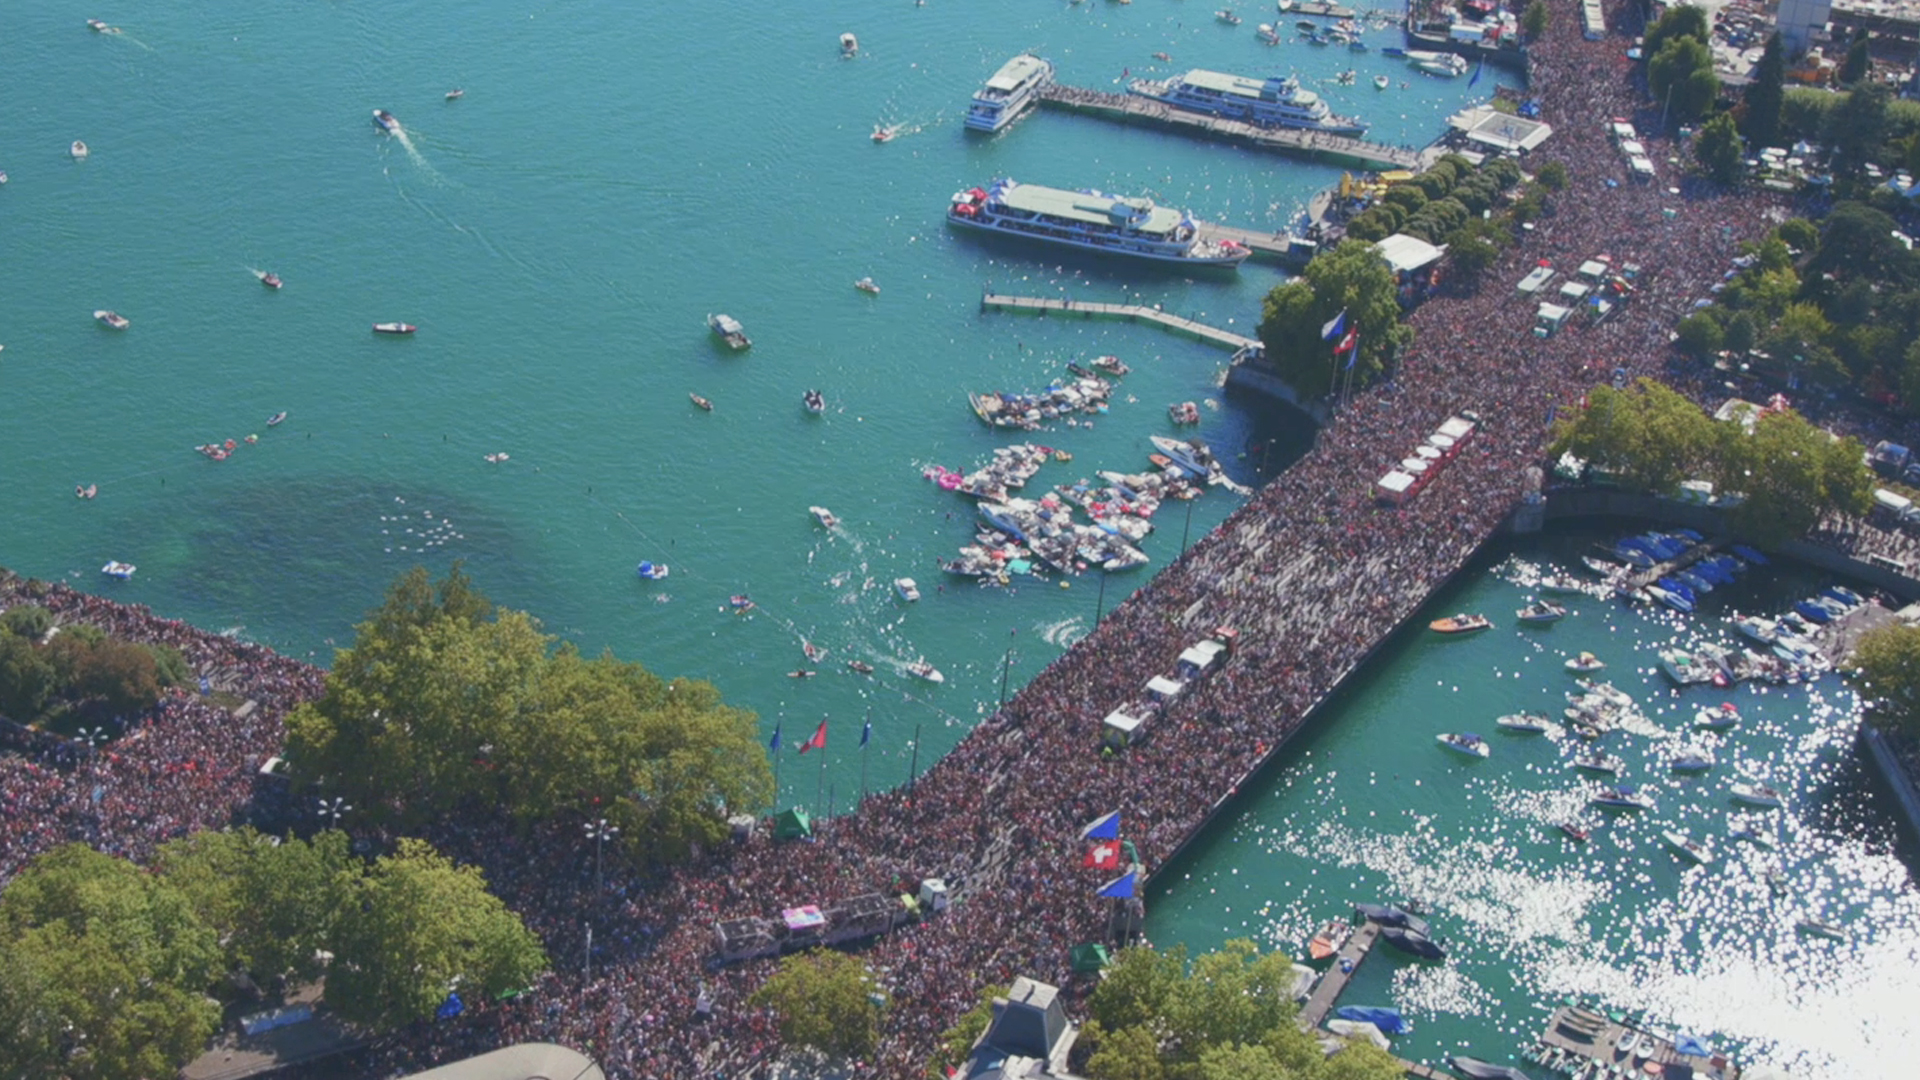 Streetparade seen from a Helicopter above the bridge crossing the river, thousands of people on the bridge